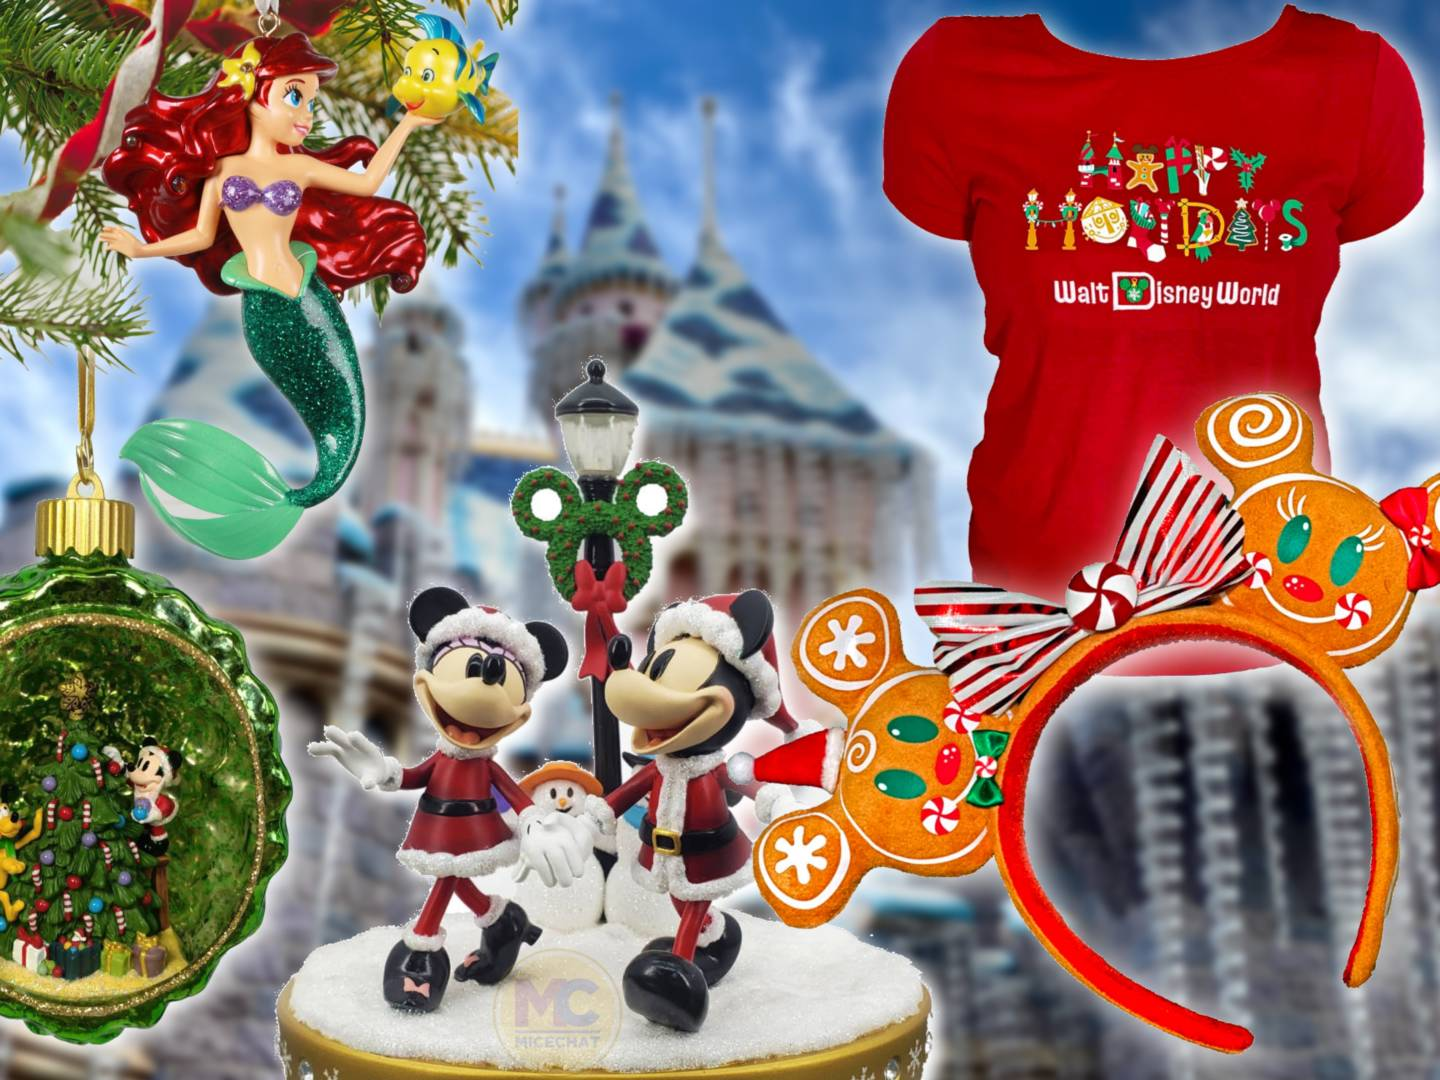 Disneyland Christmas Merchandise 2020 Unseasonal Greetings! All New Disney 2020 Holiday Merch